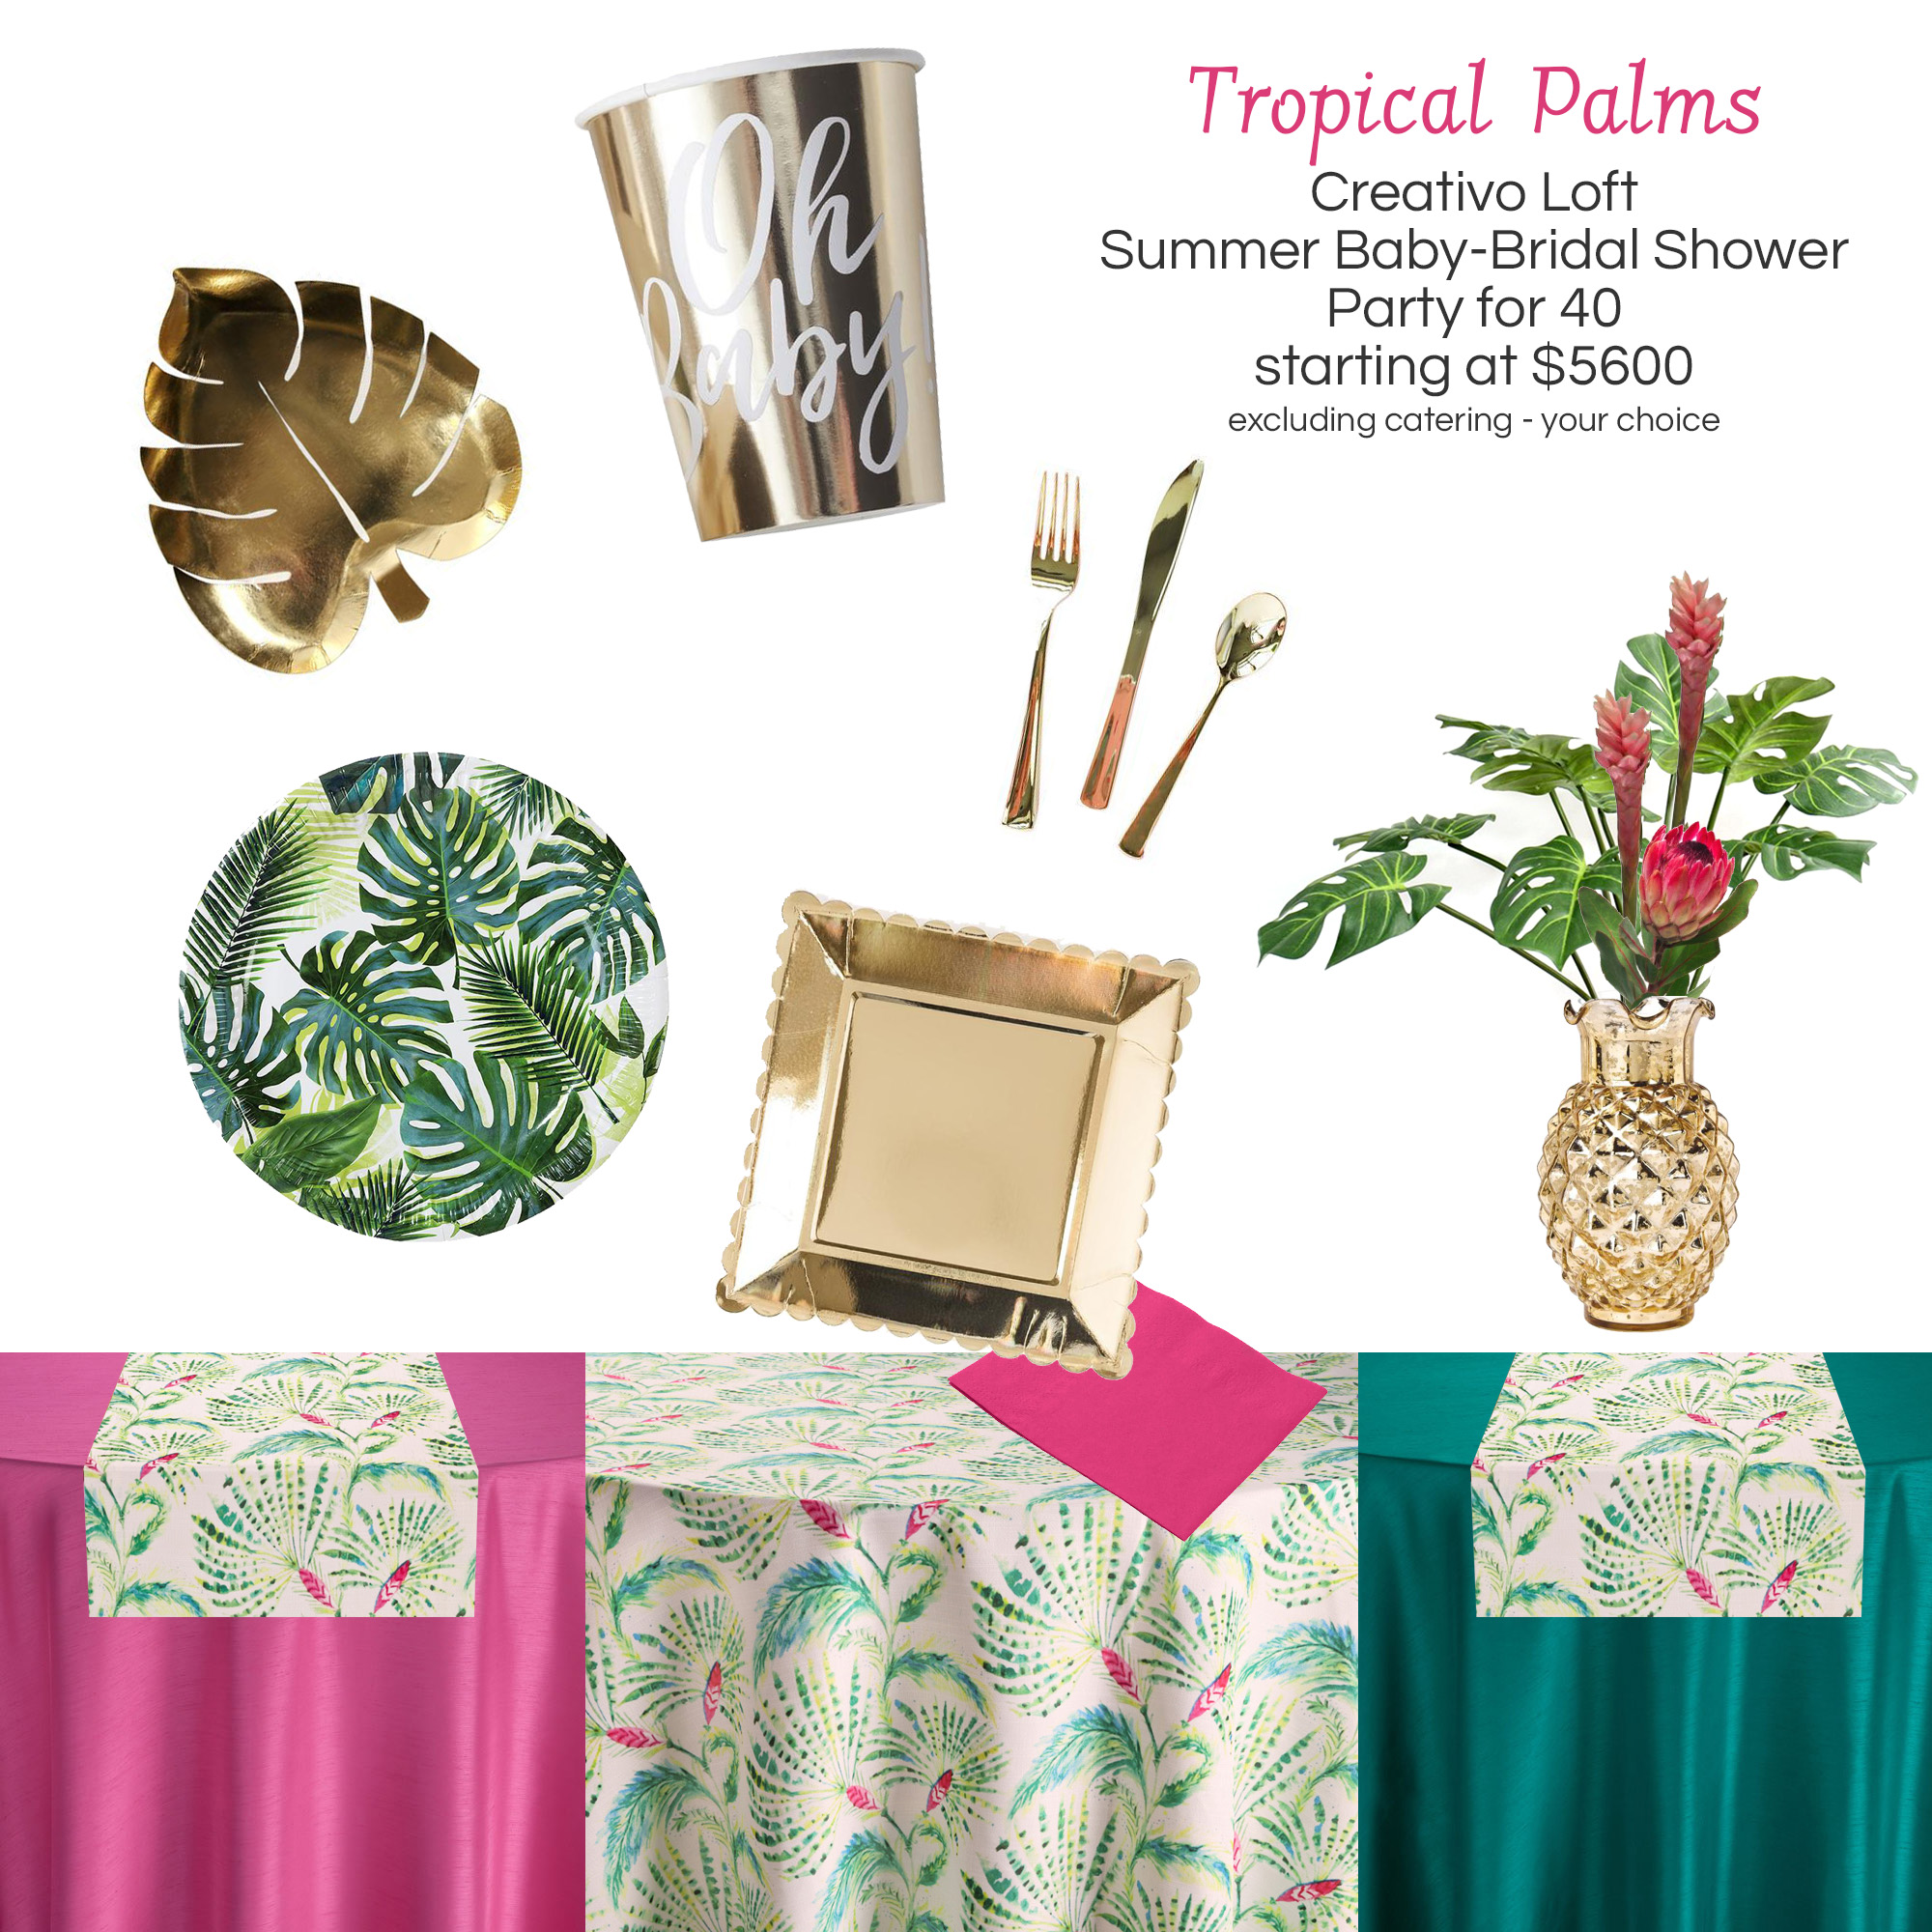 Creativo Loft Tropical Palms Party